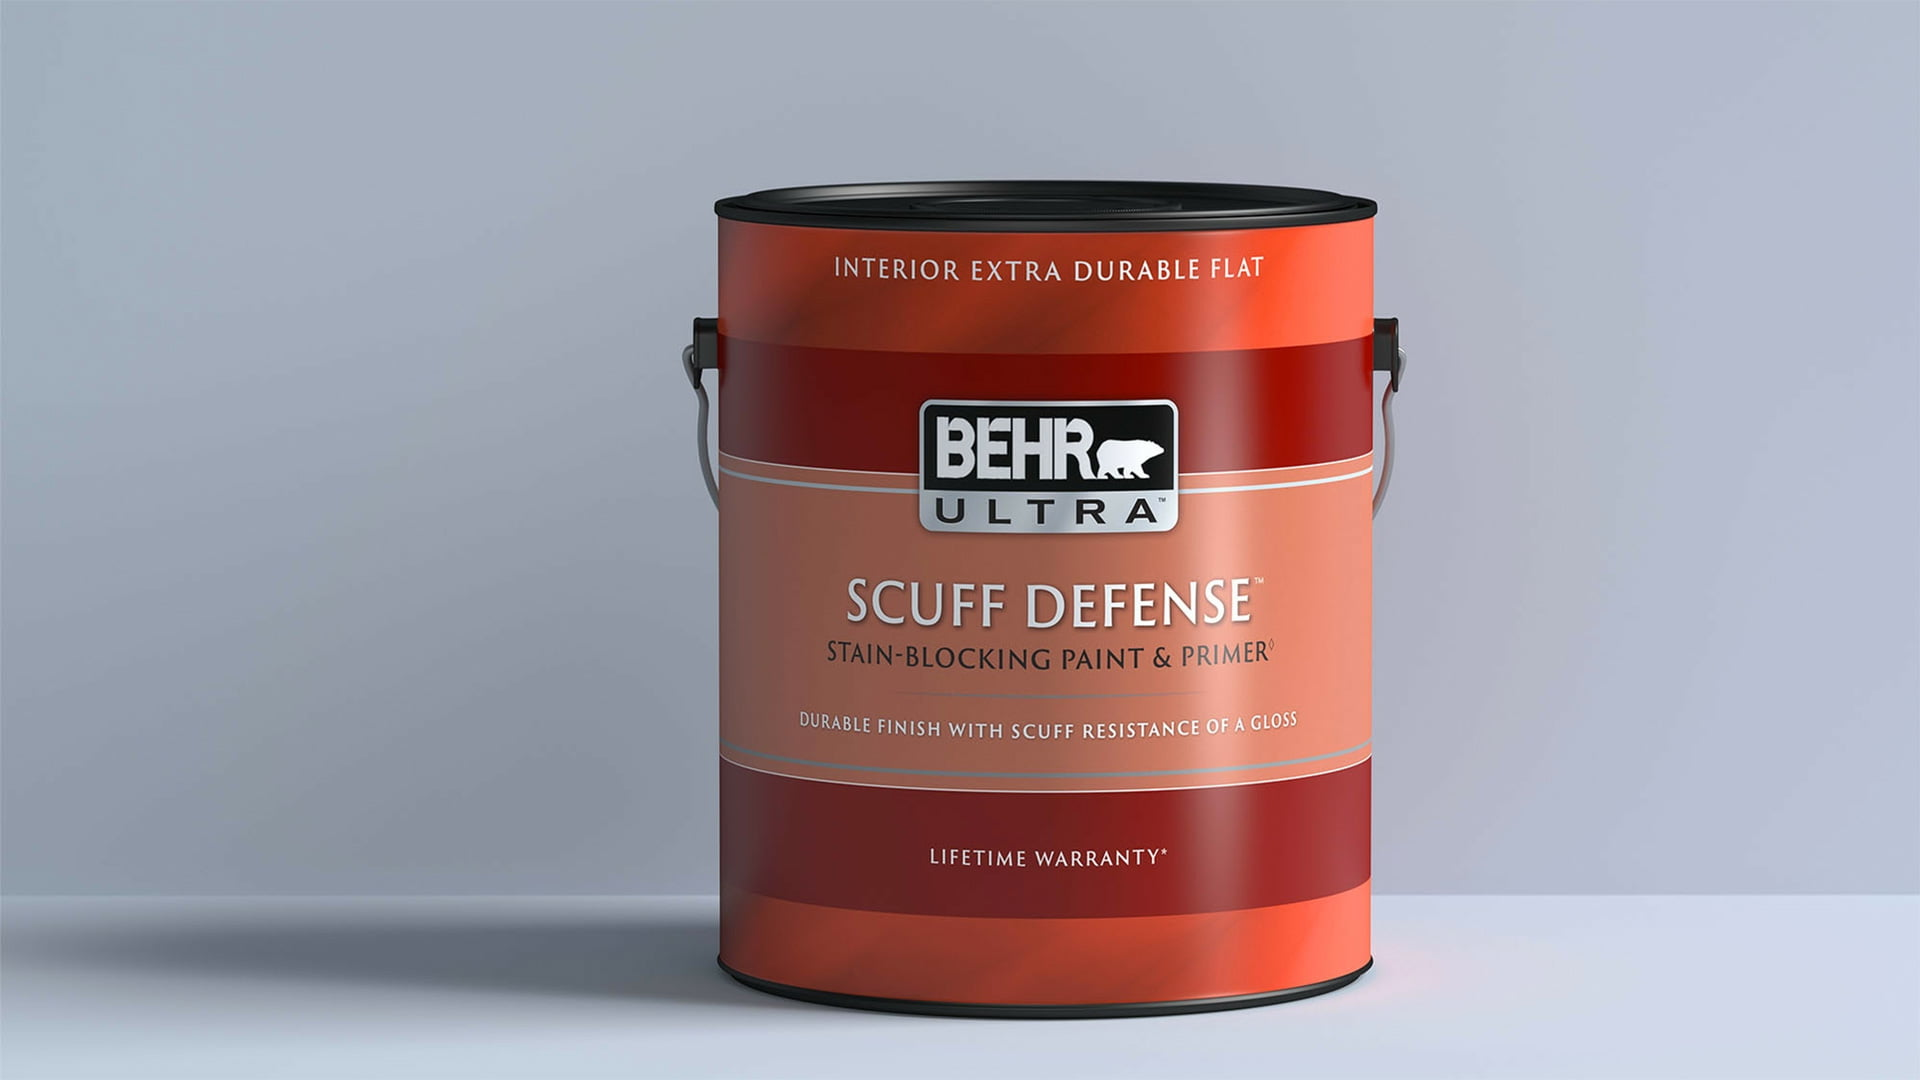 Behr Scuff Defense Paint and Primer